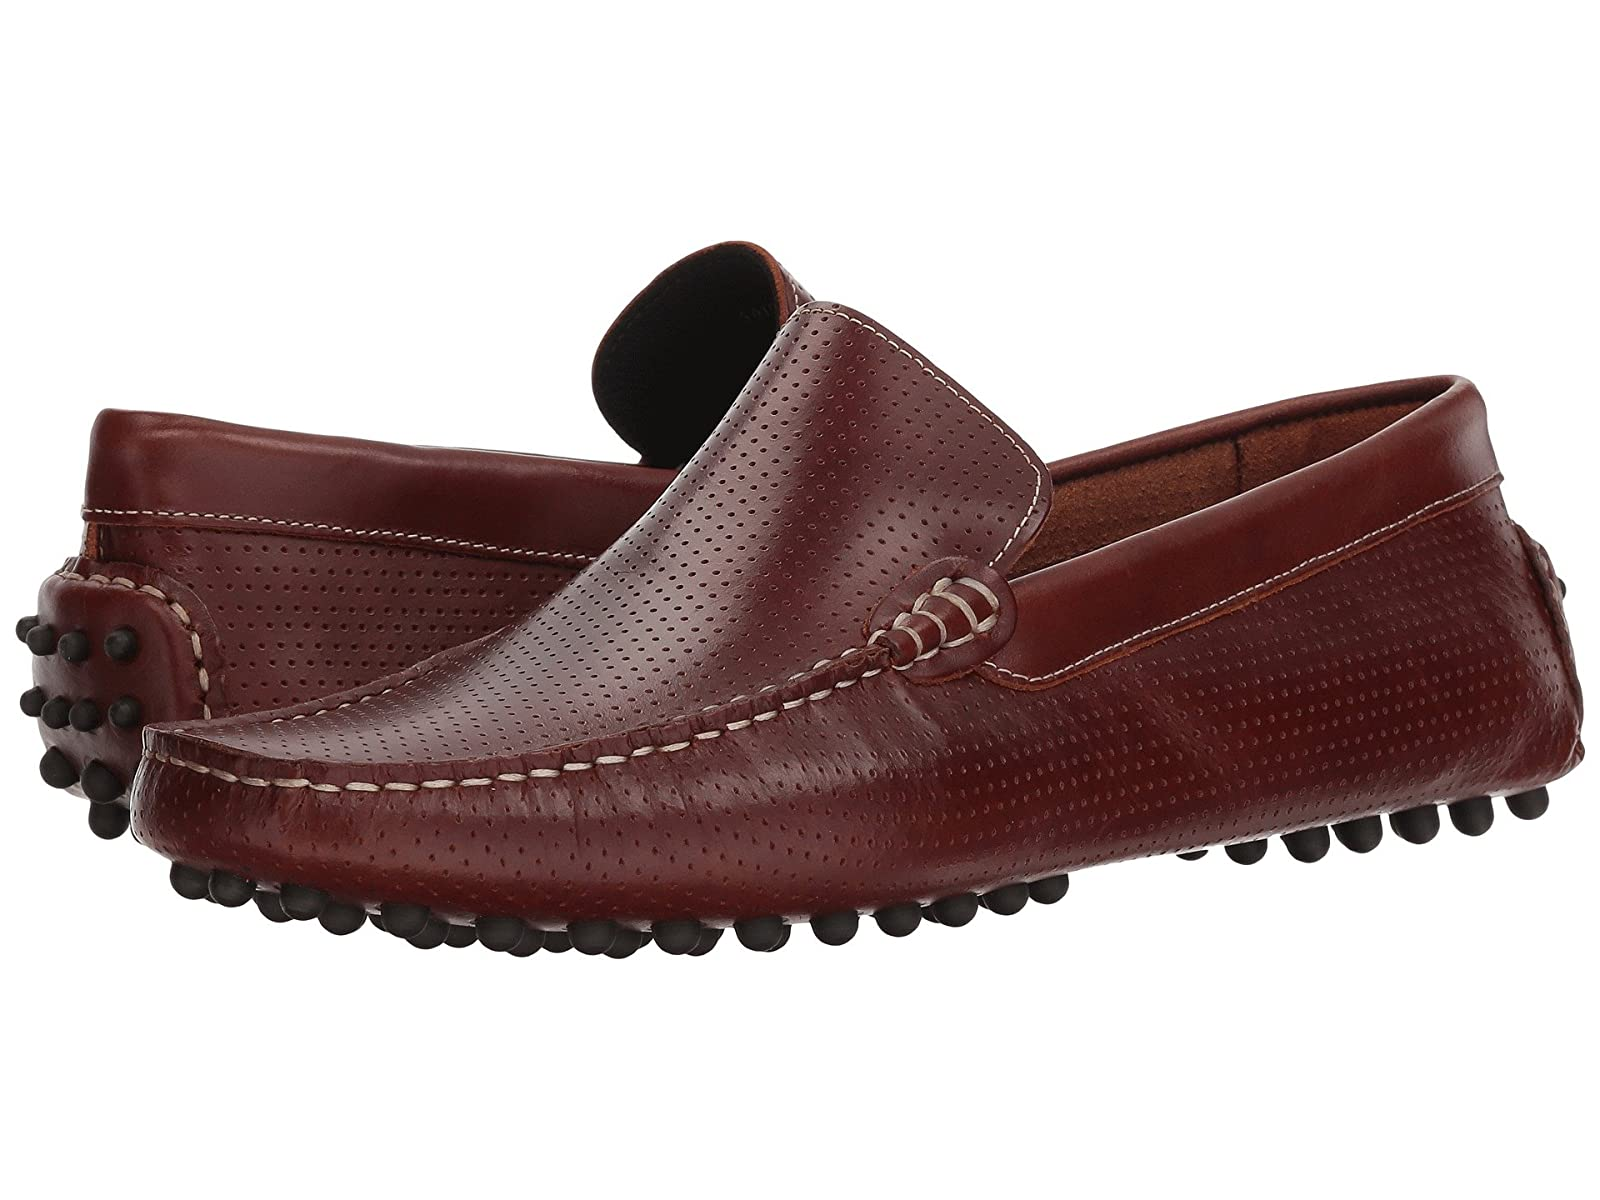 RUSH by Gordon Rush FinleyAtmospheric grades have affordable shoes